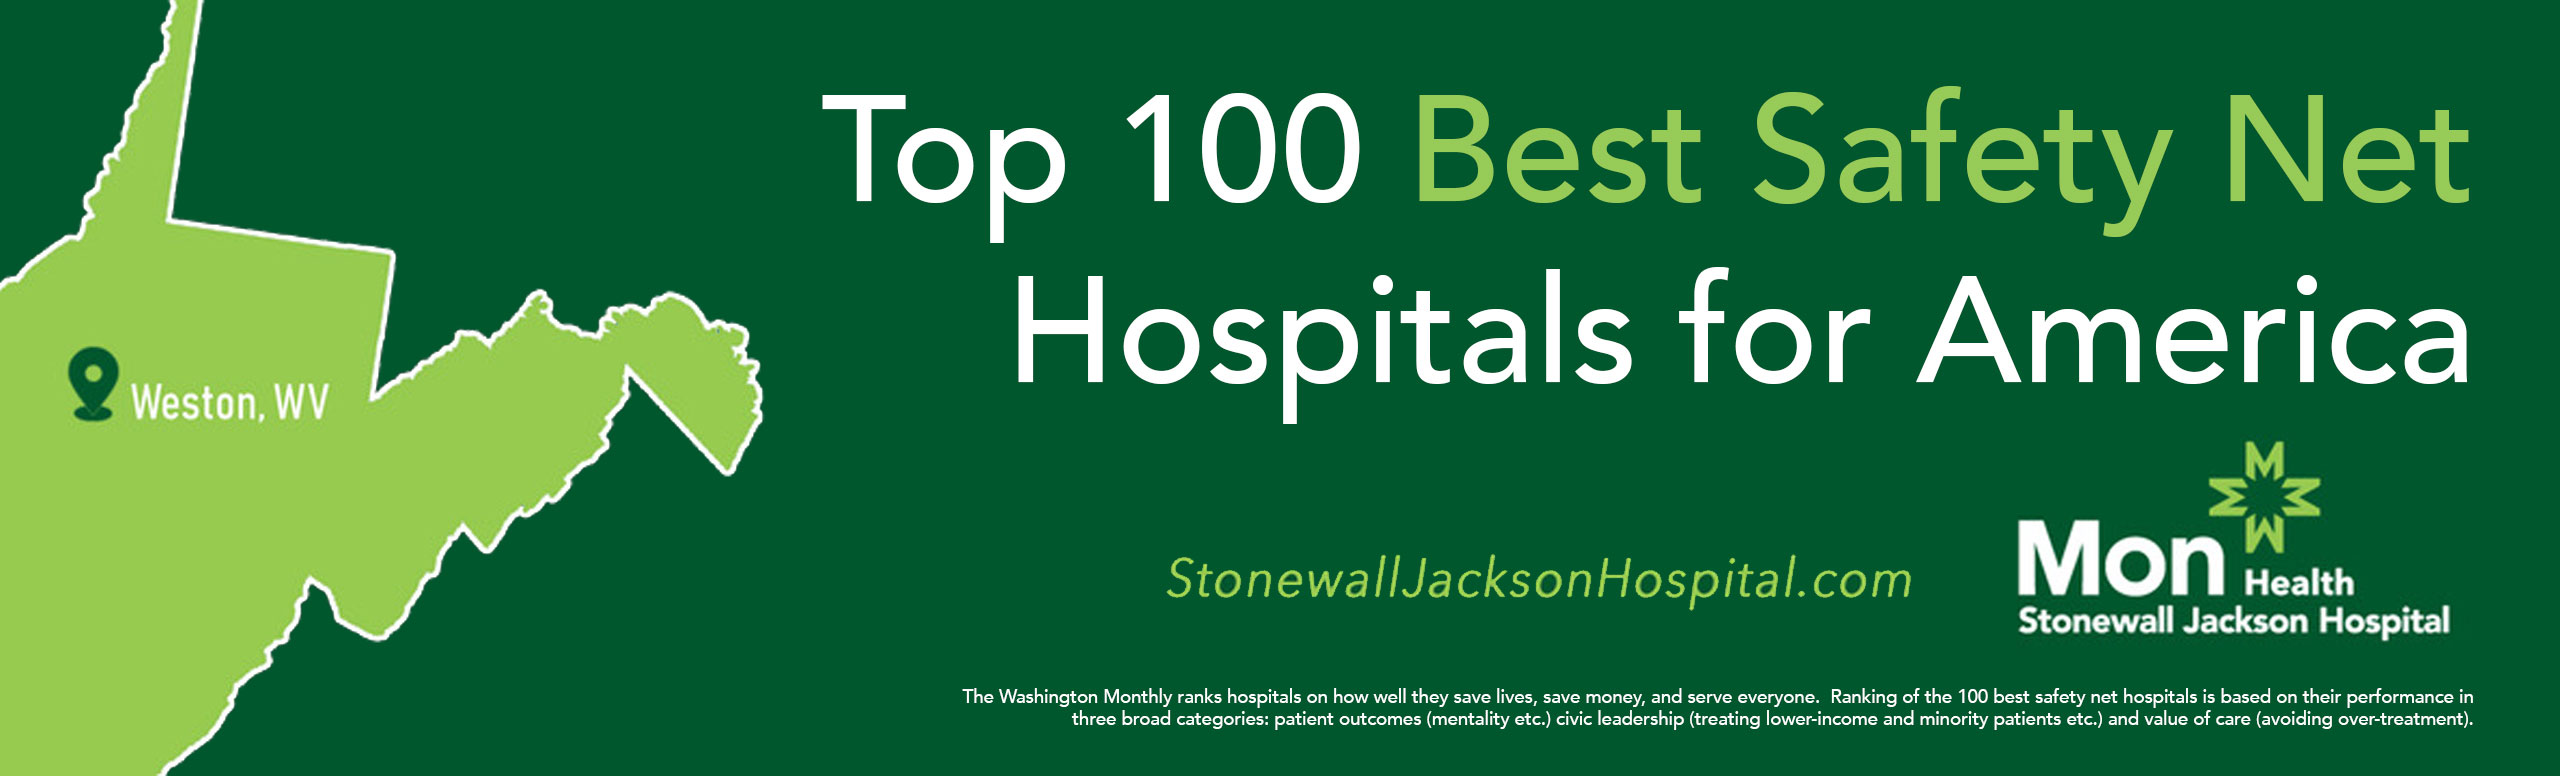 Top 100 Best Safety Net Hospitals for America